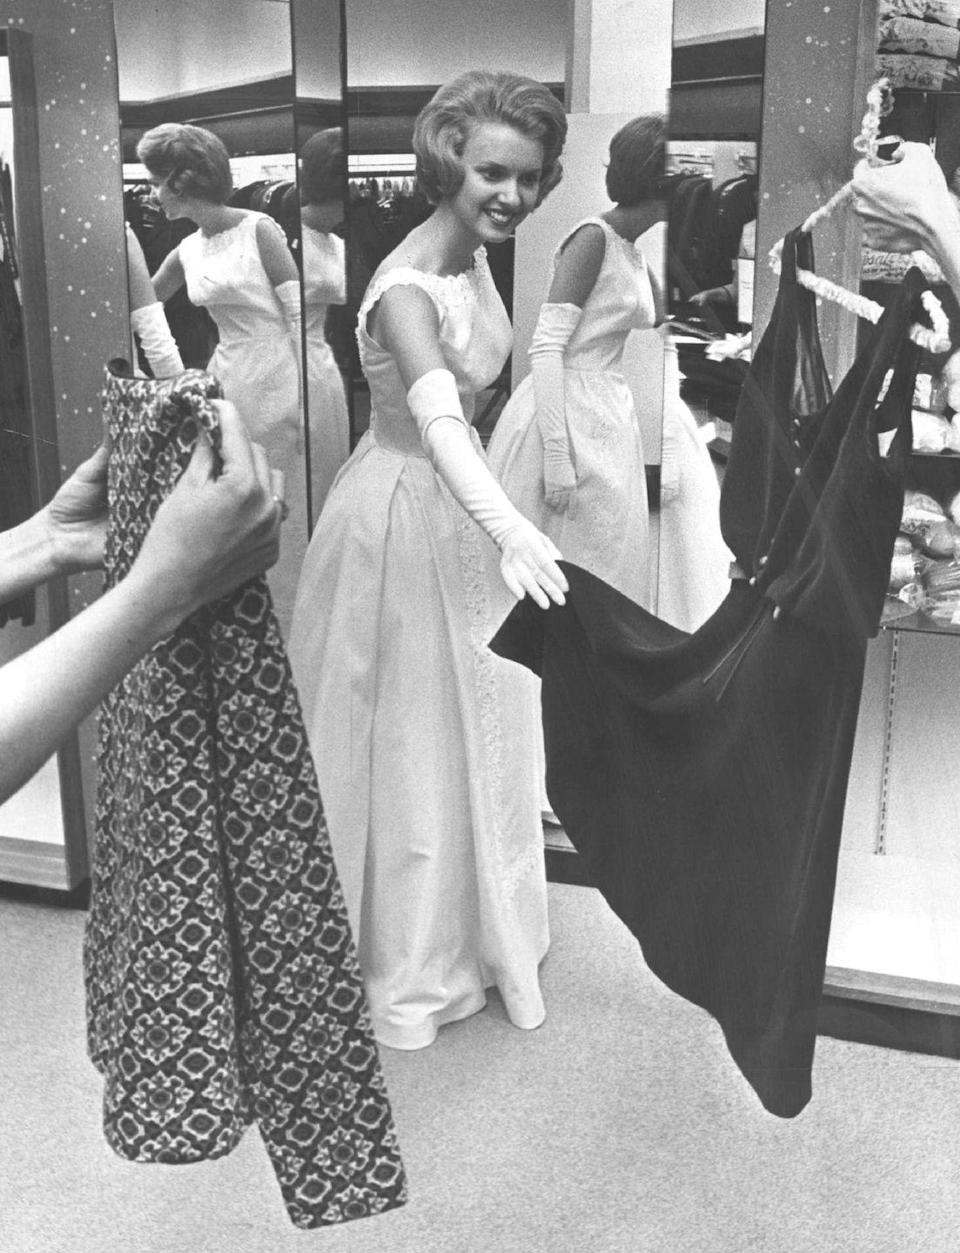 <p>Kathleen Knight of Colorado squeezes in one last fitting before the competition. This entire look is pure retro perfection.</p>